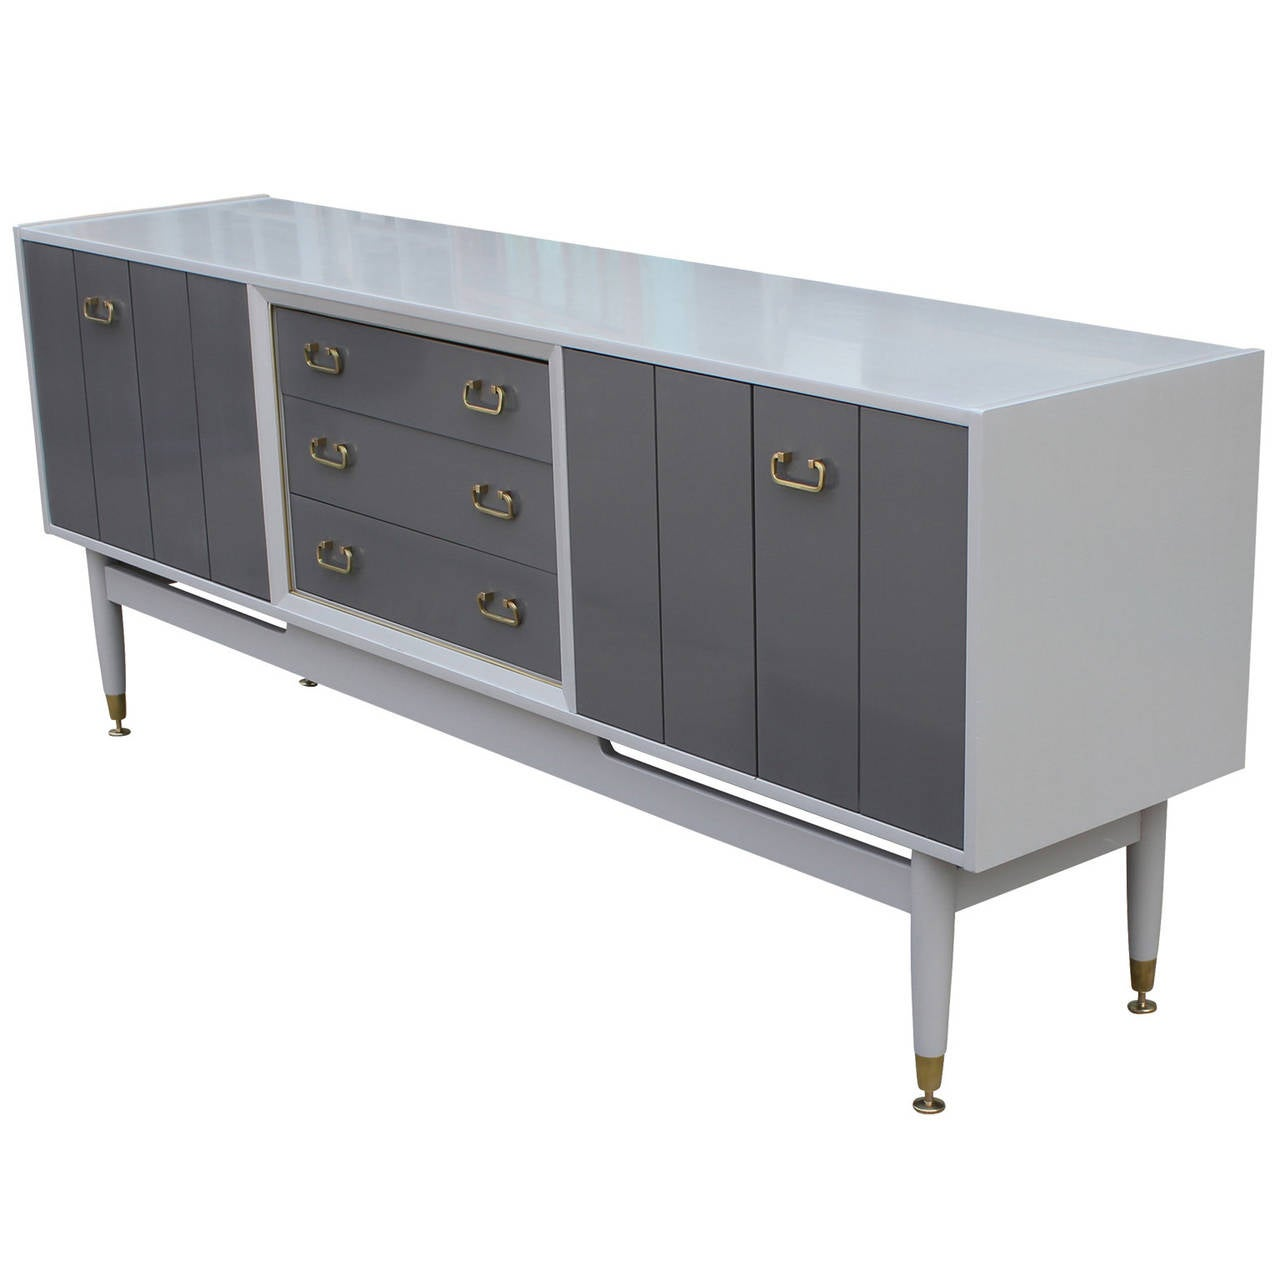 grey sideboard 28 images stunning tone on tone brass handle grey sideboard at 1stdibs buy. Black Bedroom Furniture Sets. Home Design Ideas